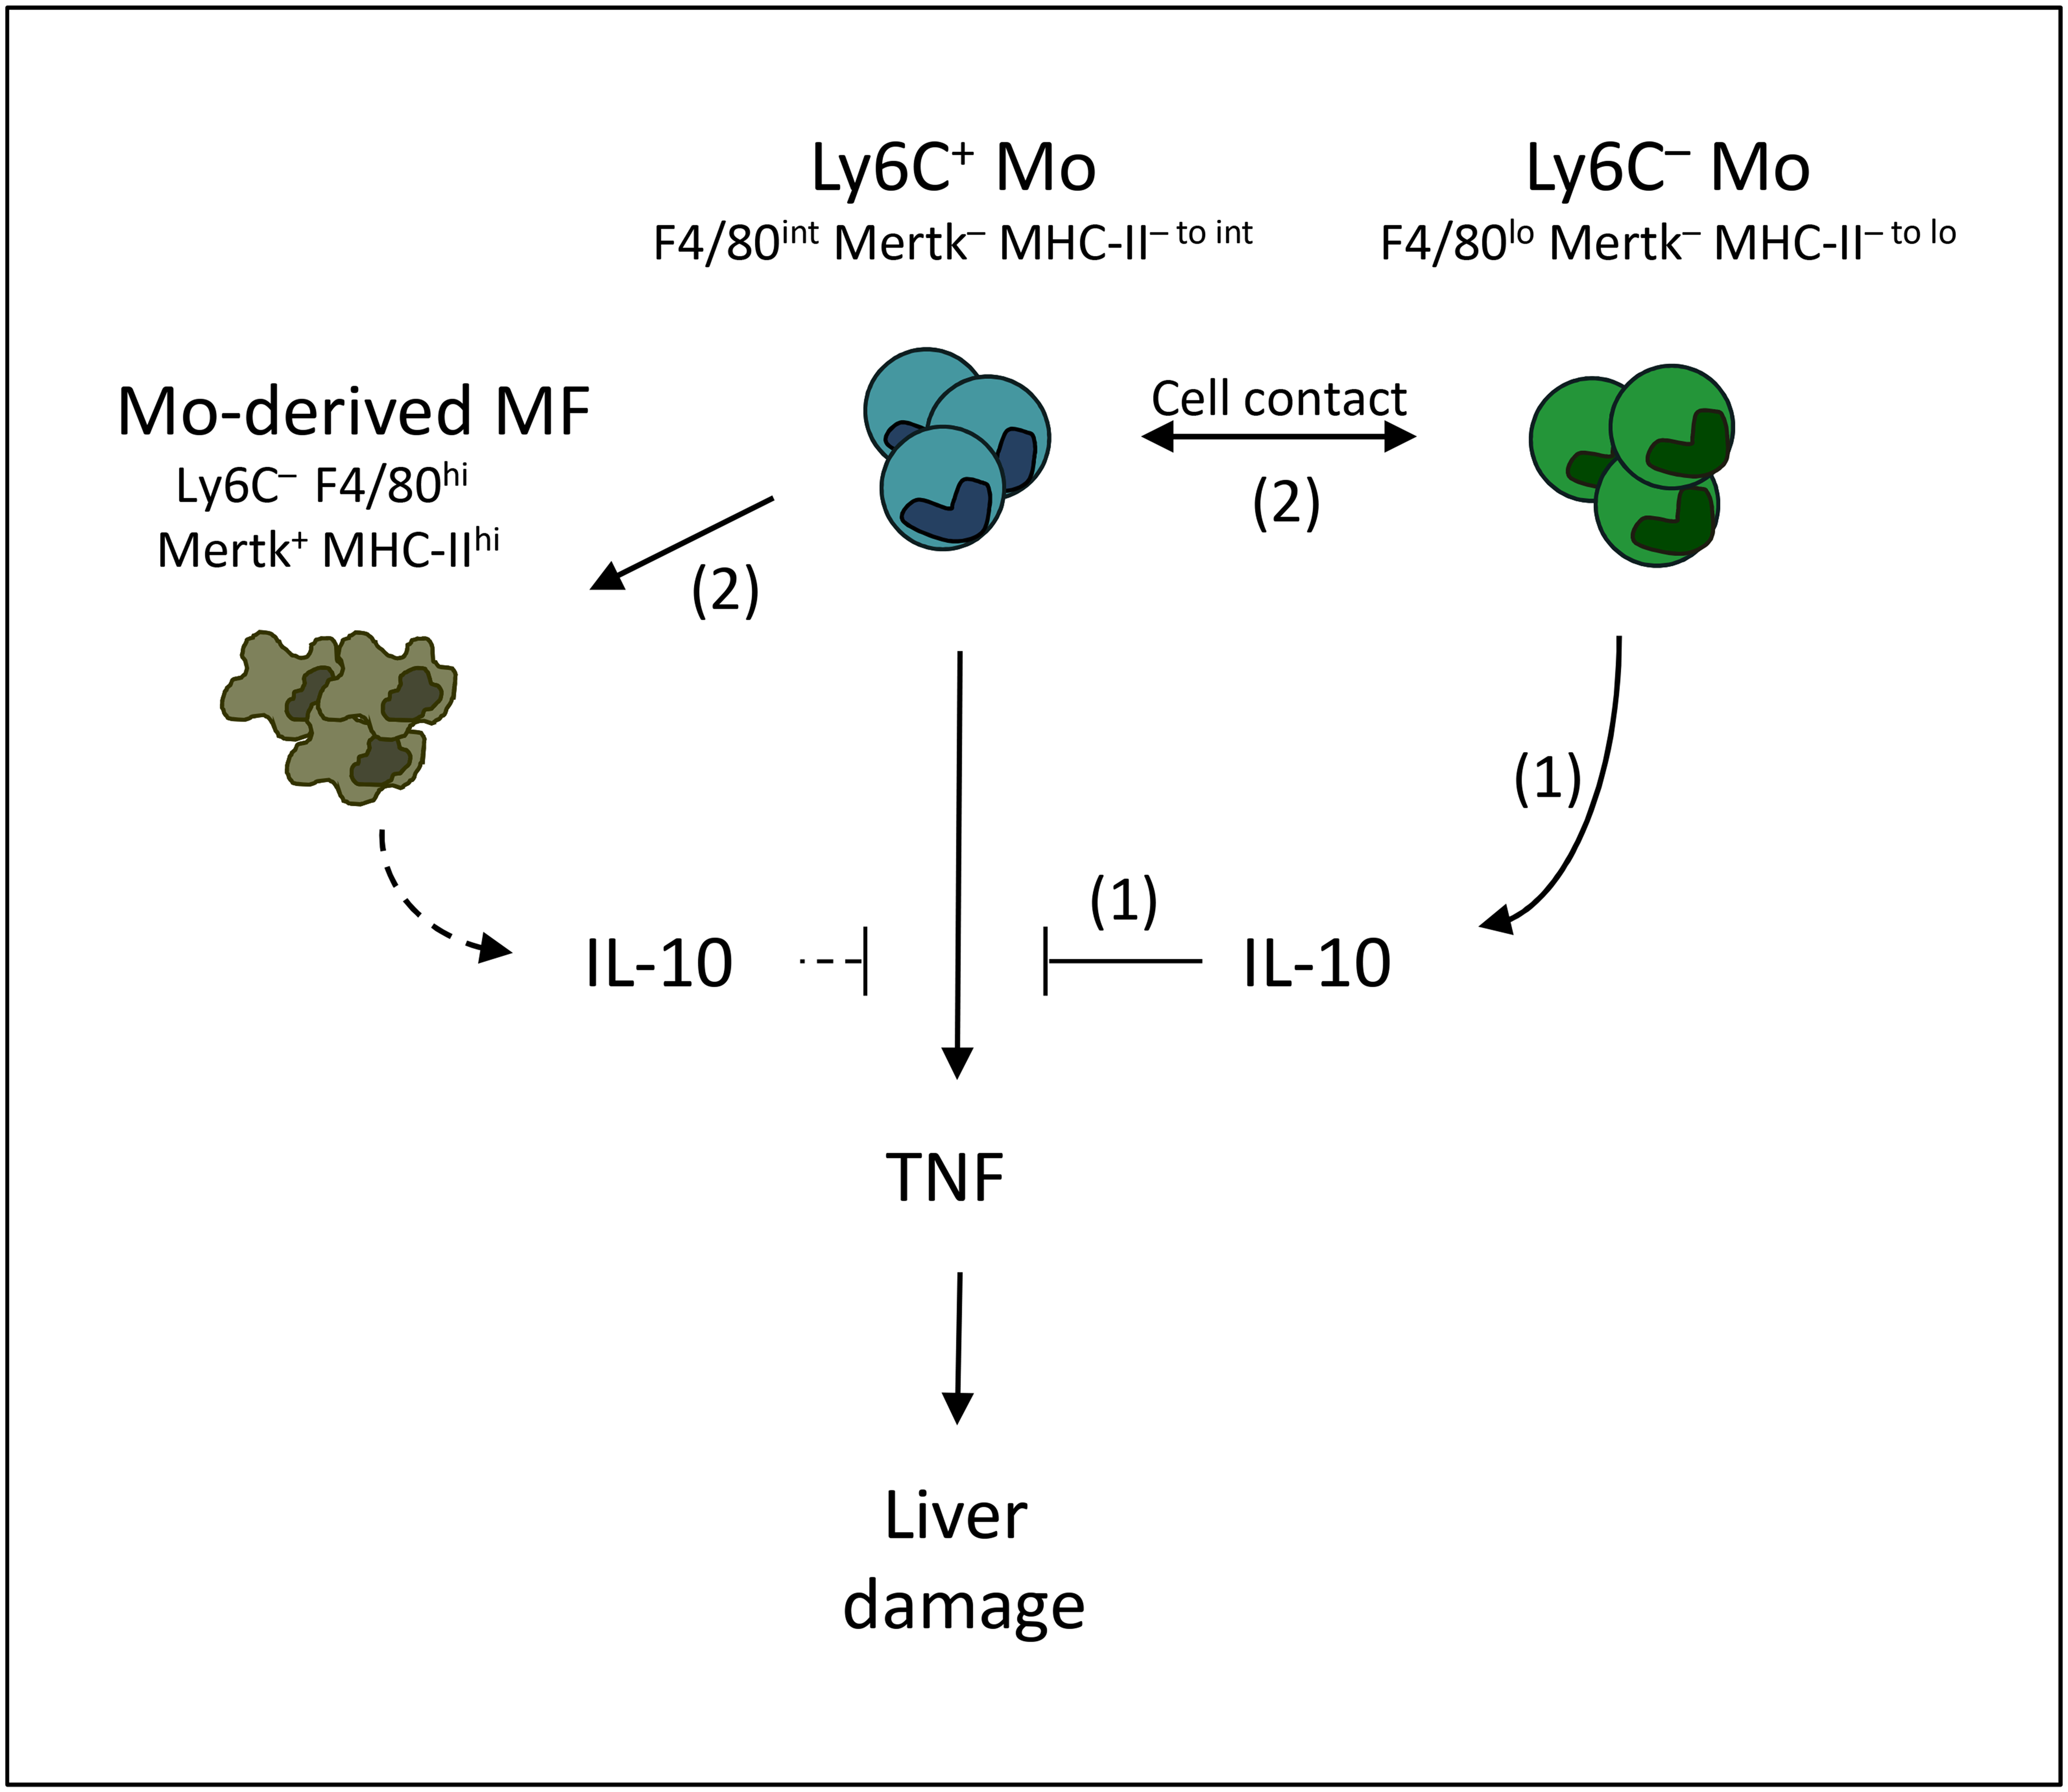 Overview of the interactions between Ly6C+ monocytes, Ly6C- monocytes and macrophages contributing to trypanotolerance.